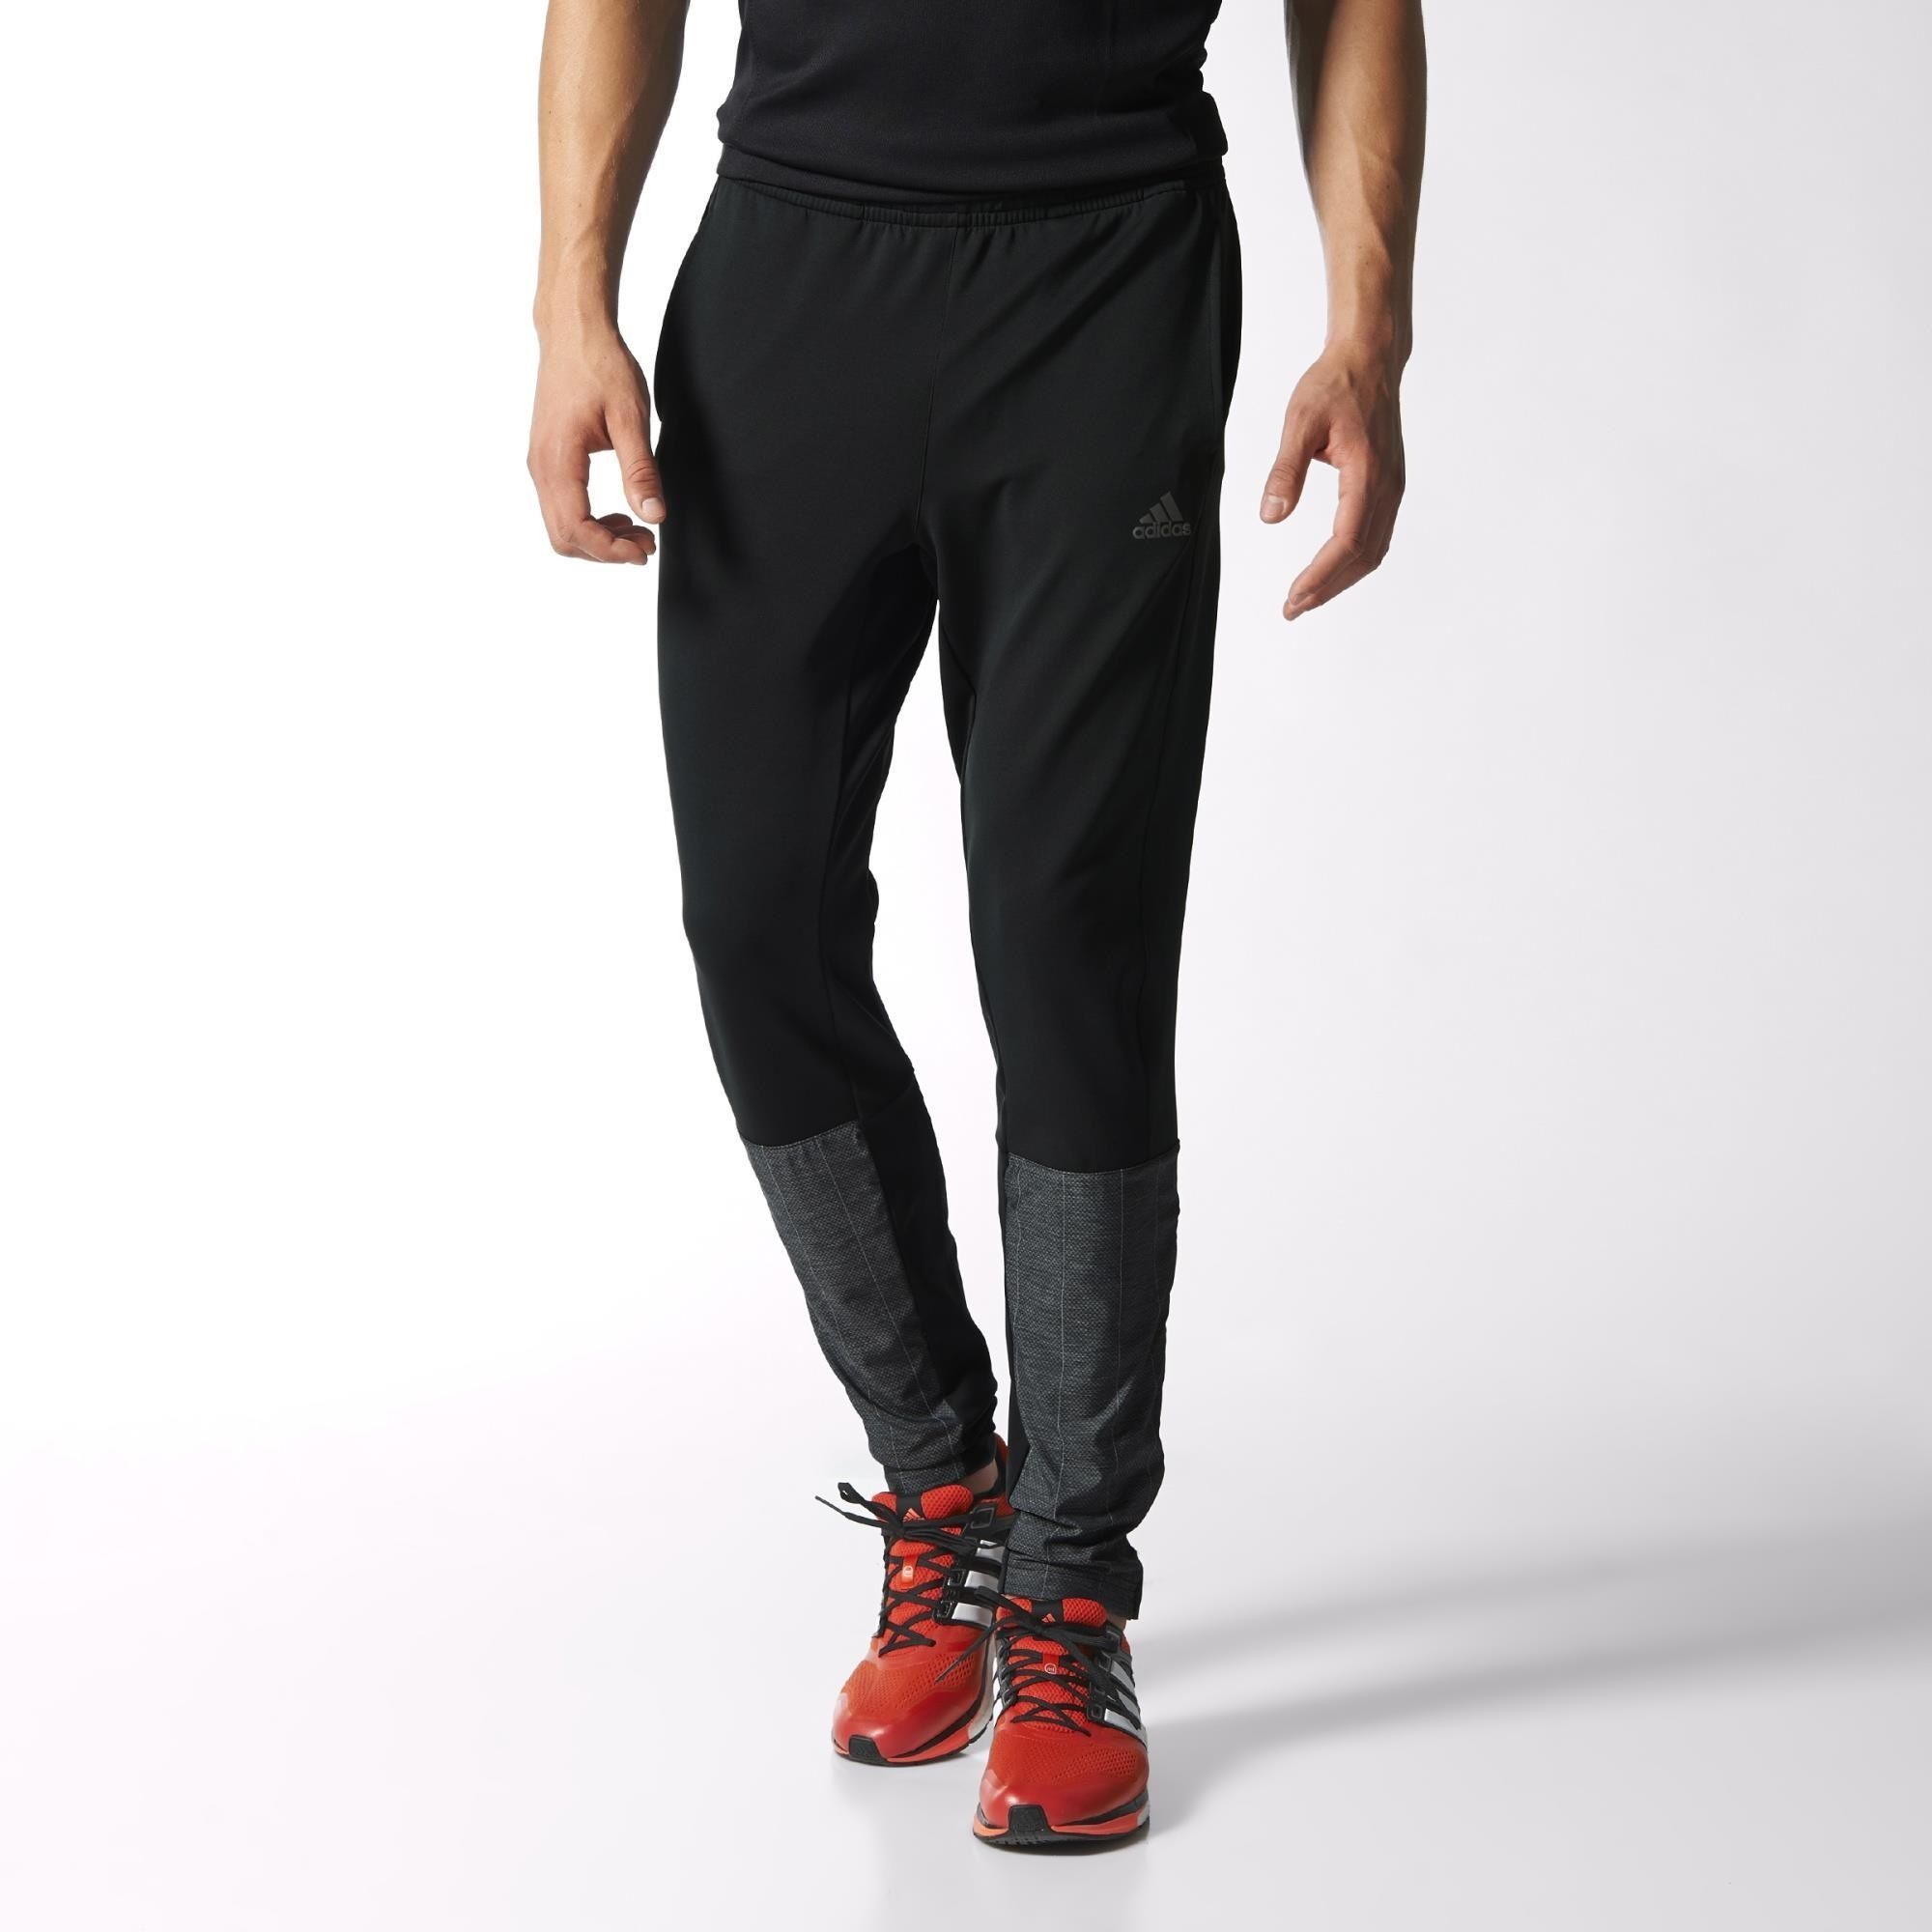 adidas - Men\u0027s Supernova Storm Slim Track Pants $75